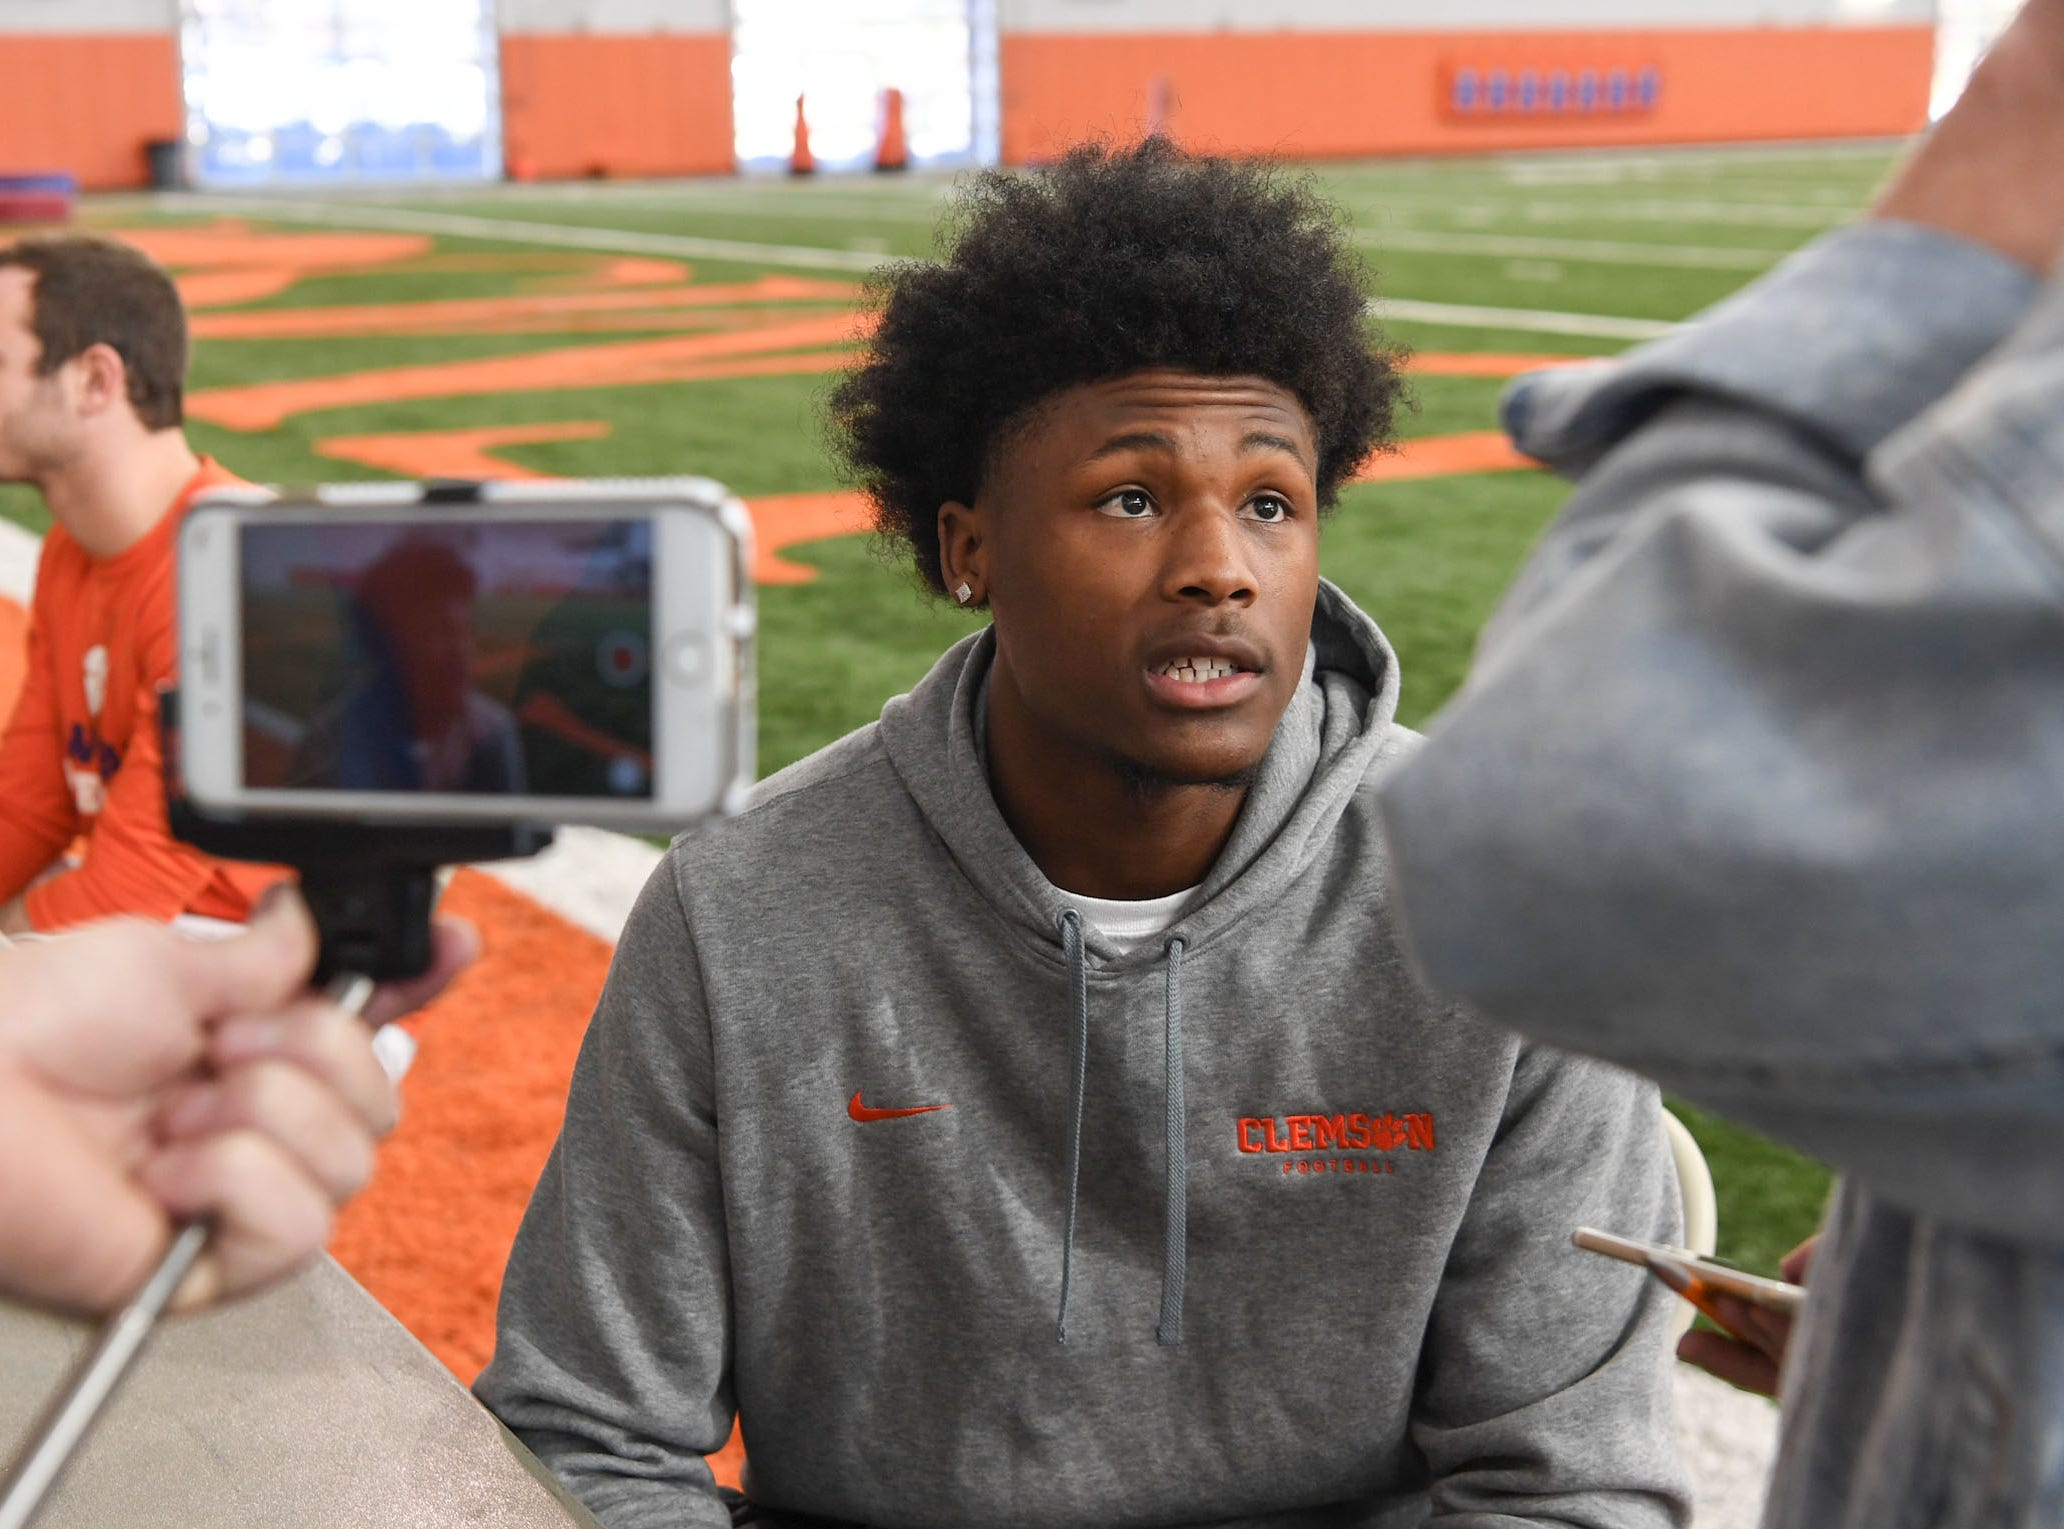 Clemson wide receiver Tee Higgins is interviewed during Media Day at the Poe Indoor Facility in Clemson on Tuesday.